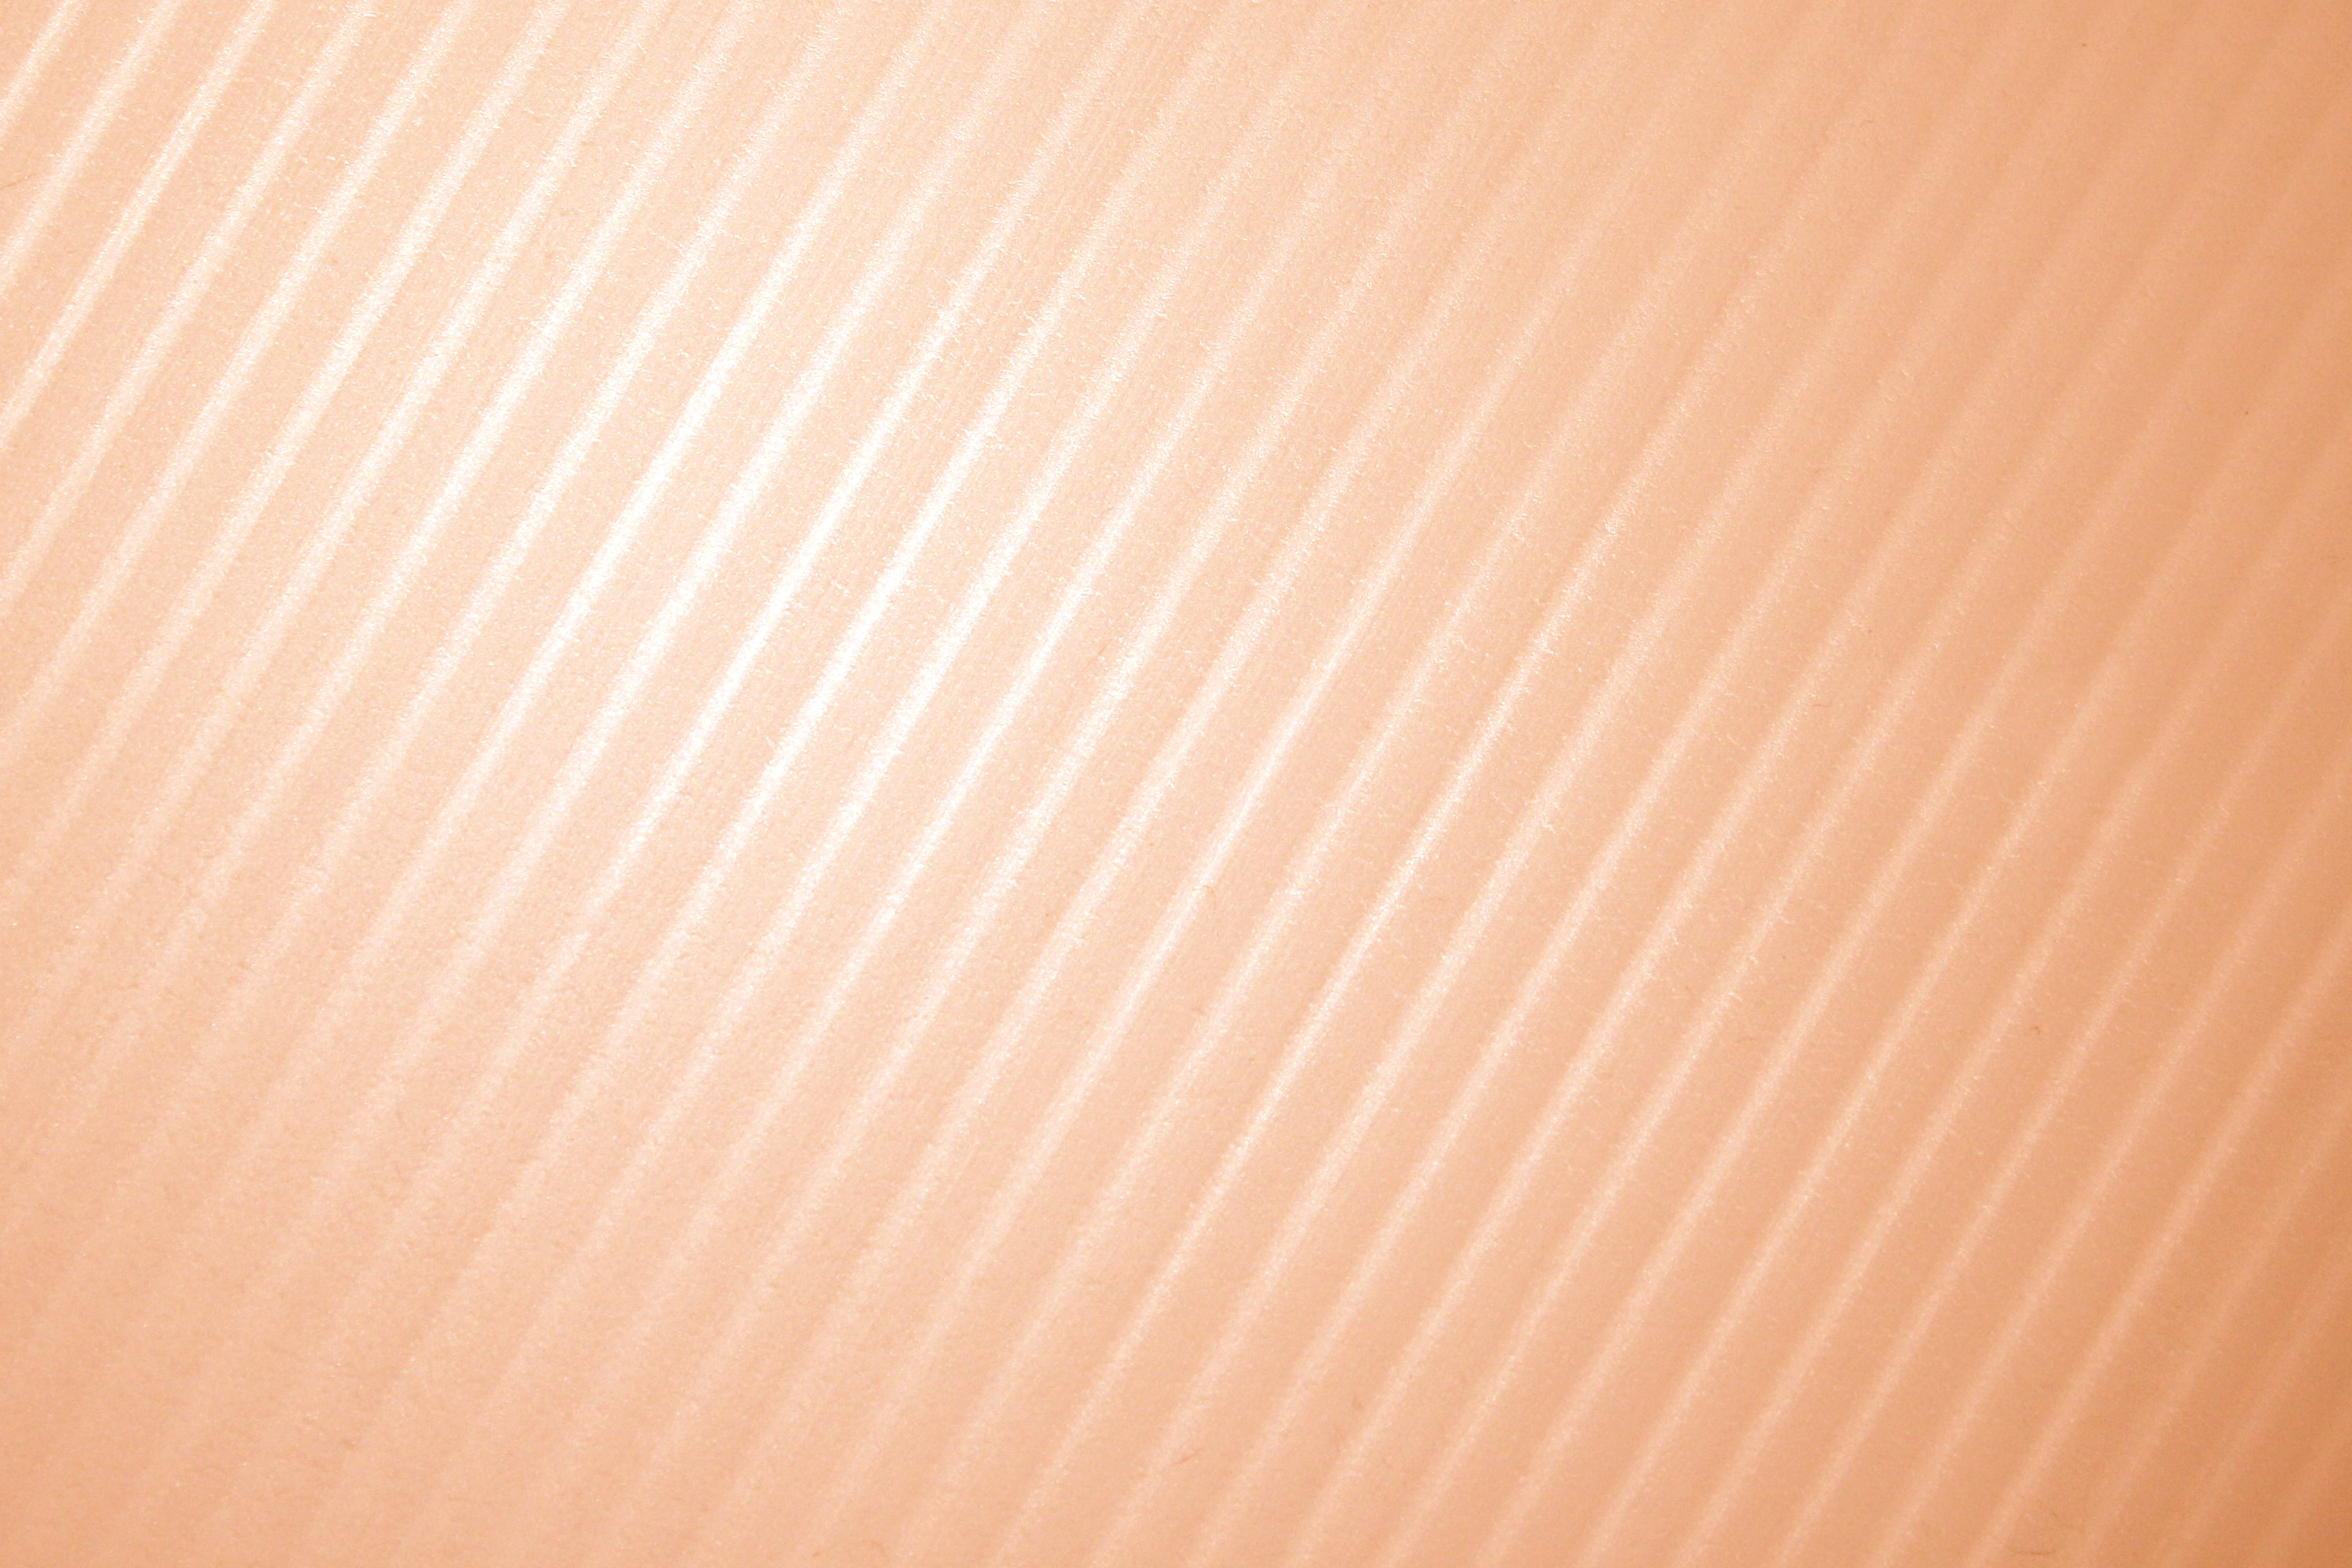 Light orange stripes